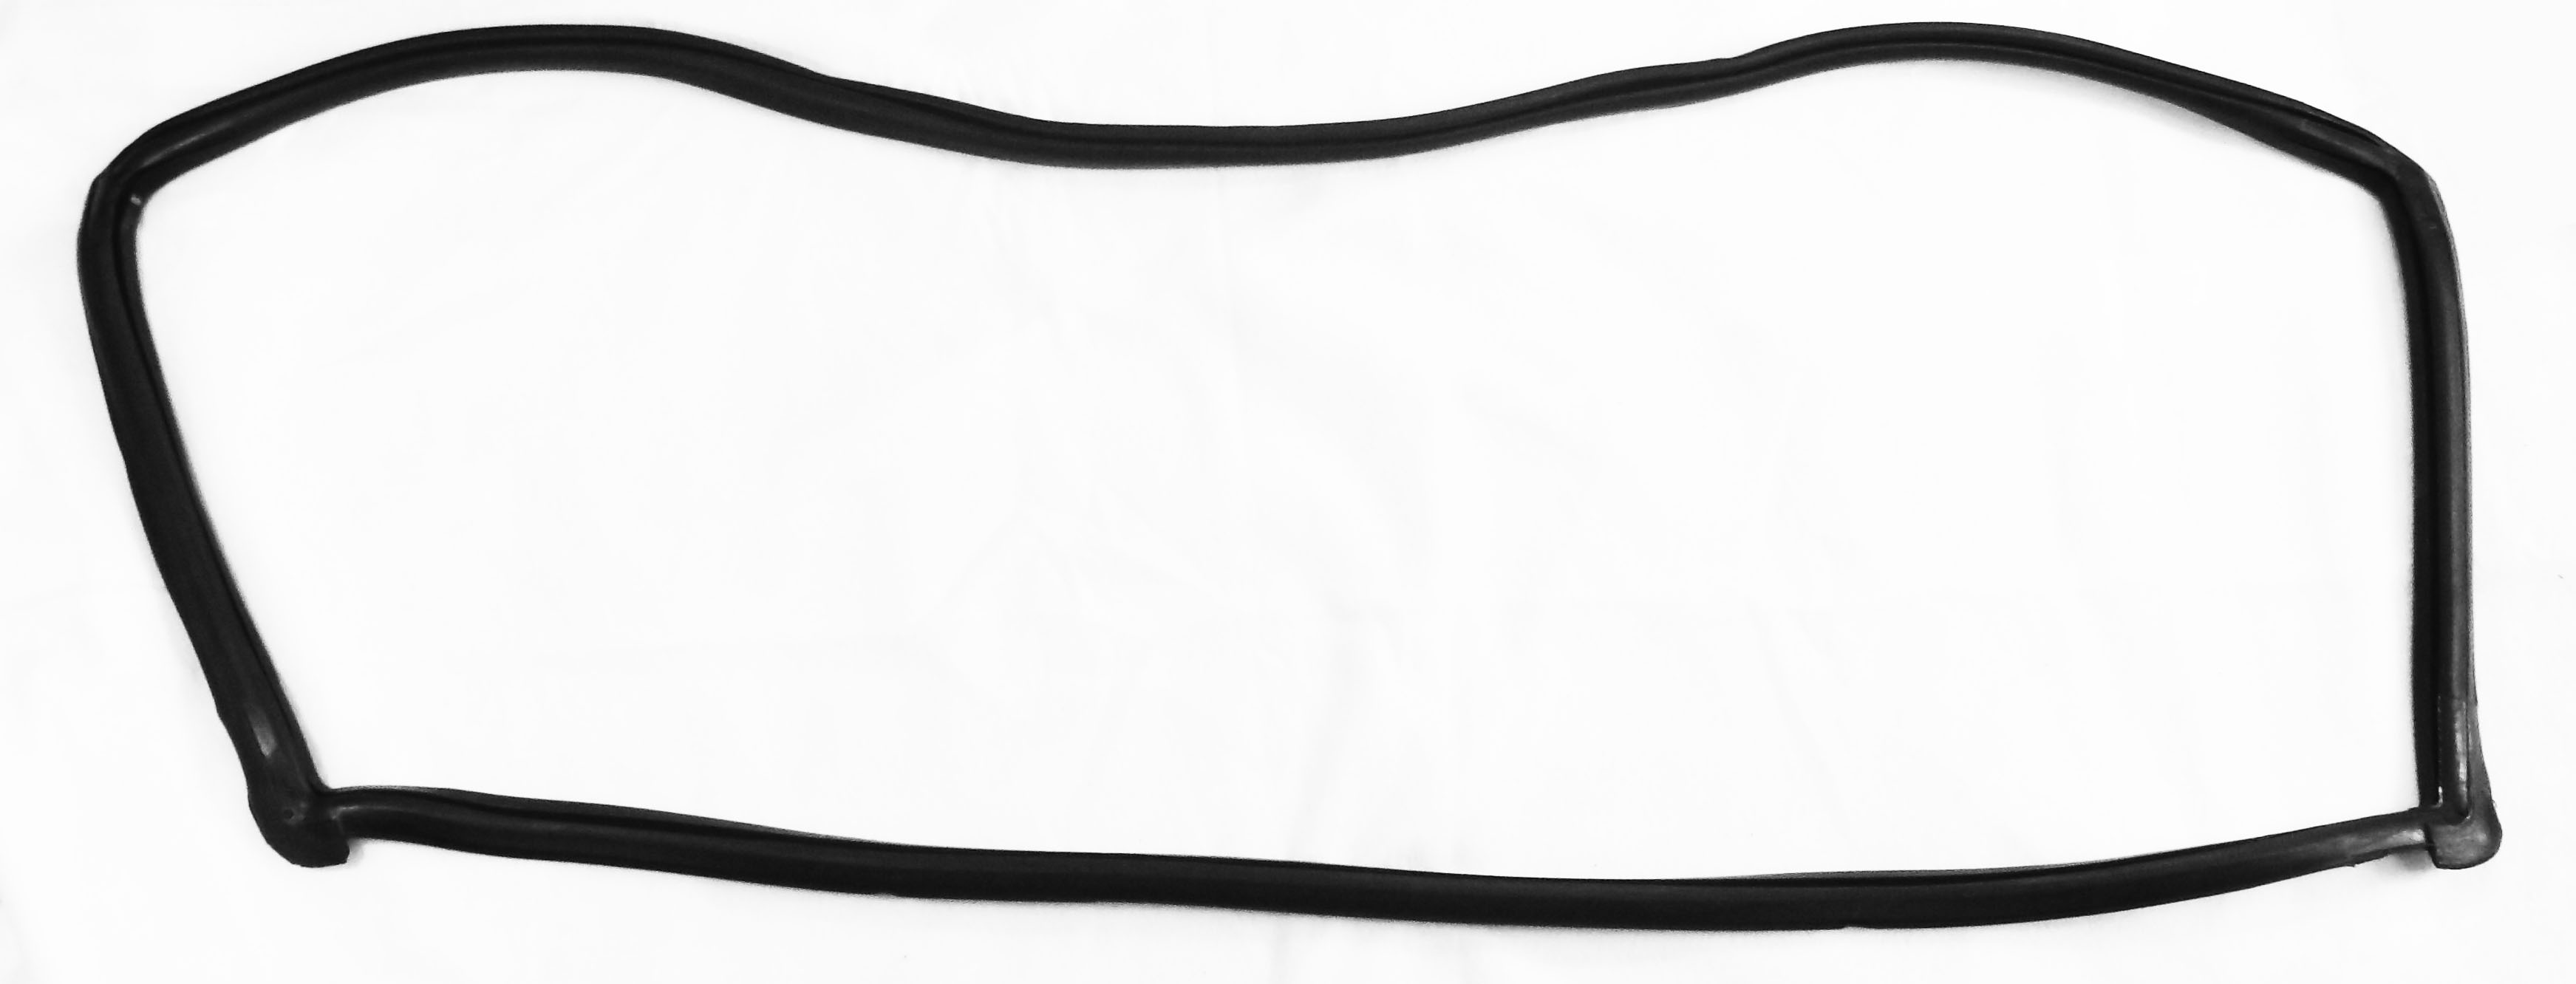 Windshield Channel For 1963-1964 Chevrolet Impala 2 Or 4 Door Sedan And Station Wagon.